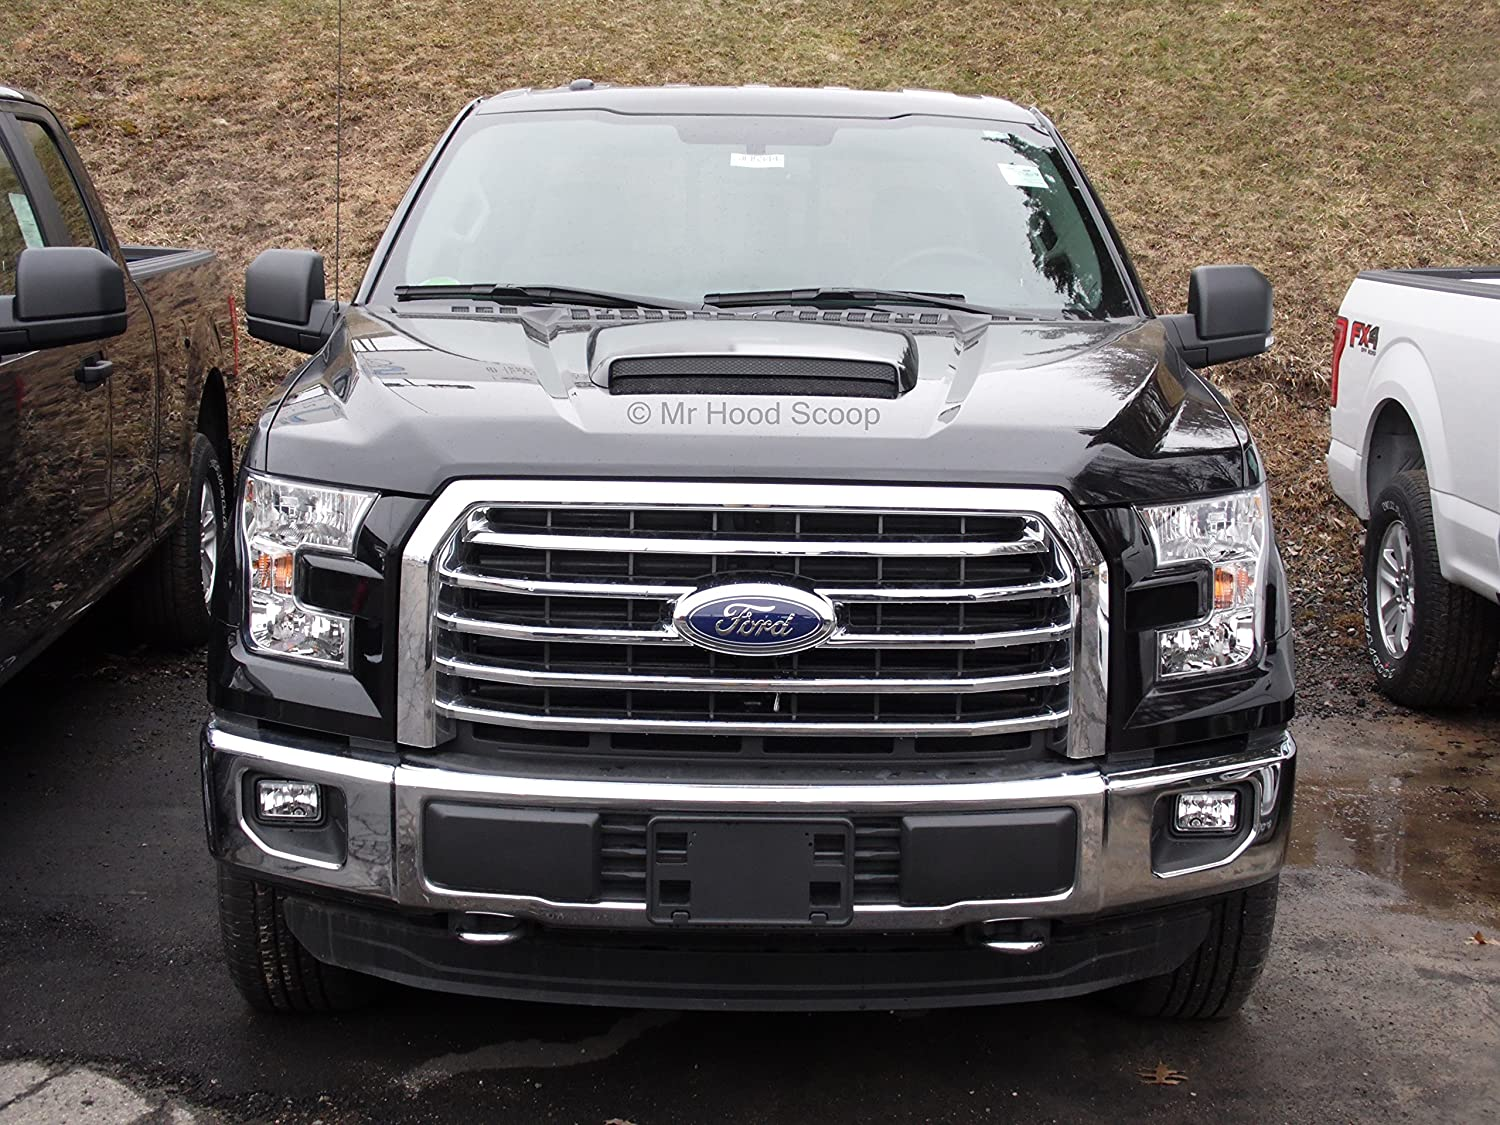 Xtreme Autosport Unpainted Hood Scoop Compatible with 2004-2008 Ford F150 by MrHoodScoop HS002